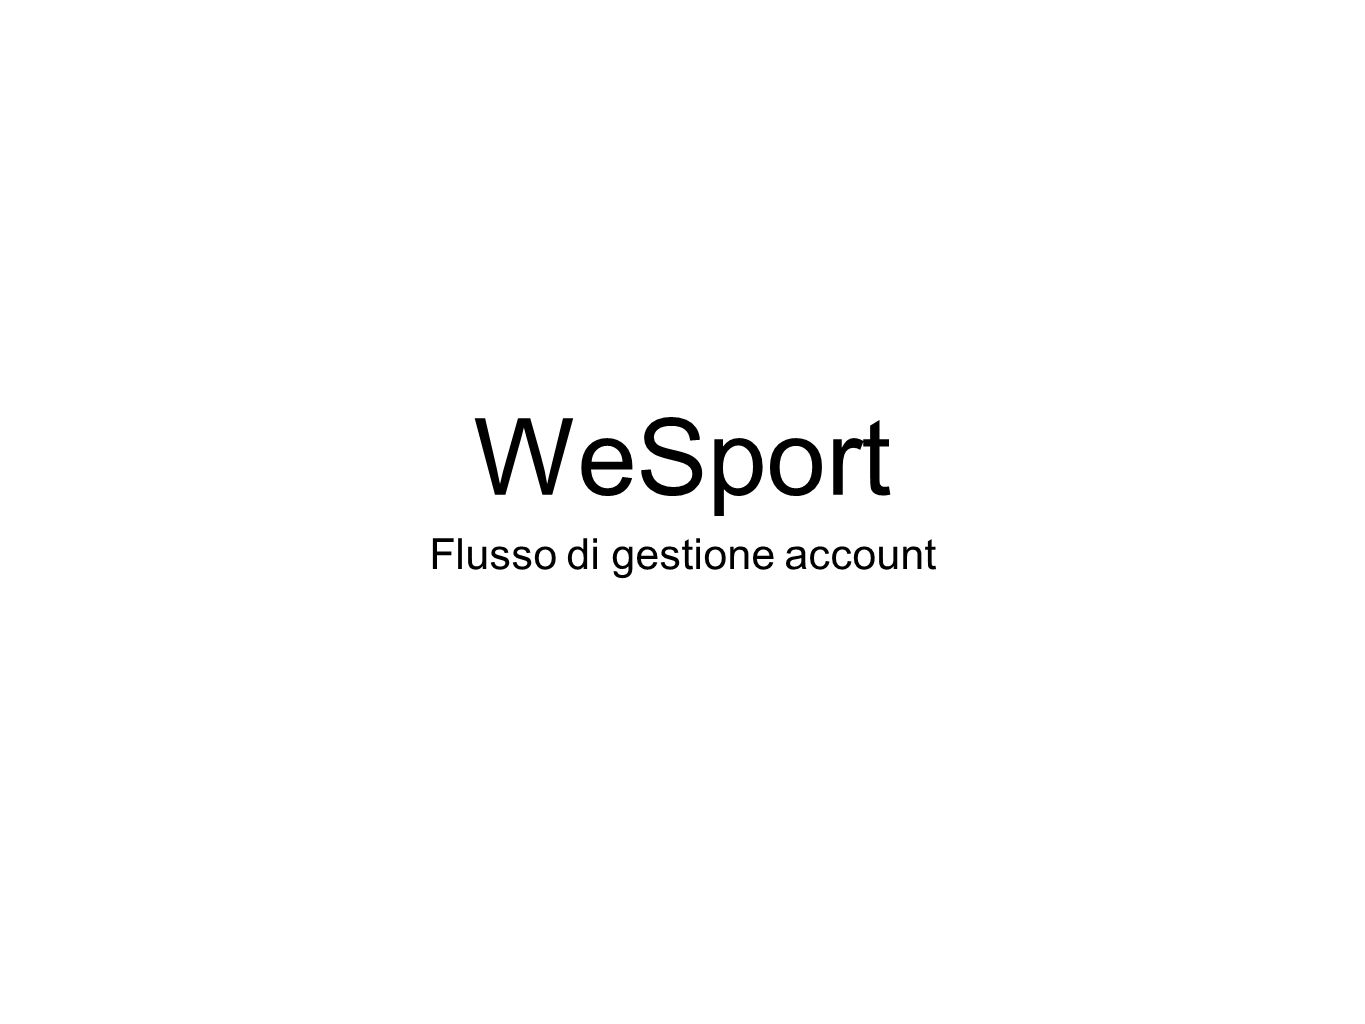 WeSport Flusso di gestione account